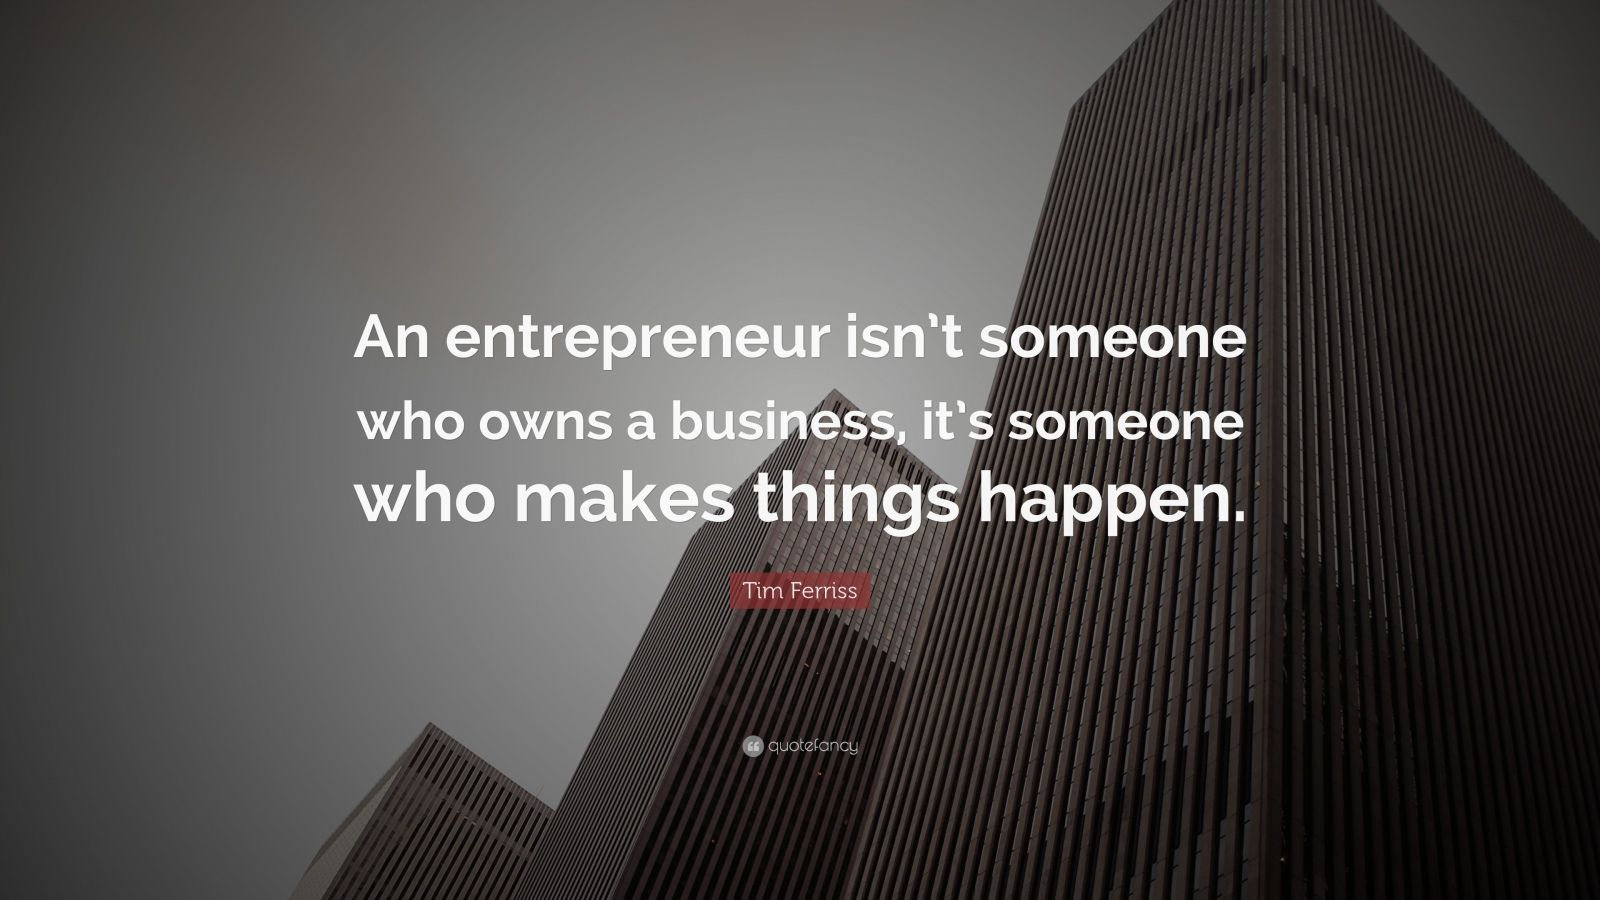 Tim ferriss quote an entrepreneur isn t someone who owns a business it s someone who makes - Entrepreneur wallpaper ...